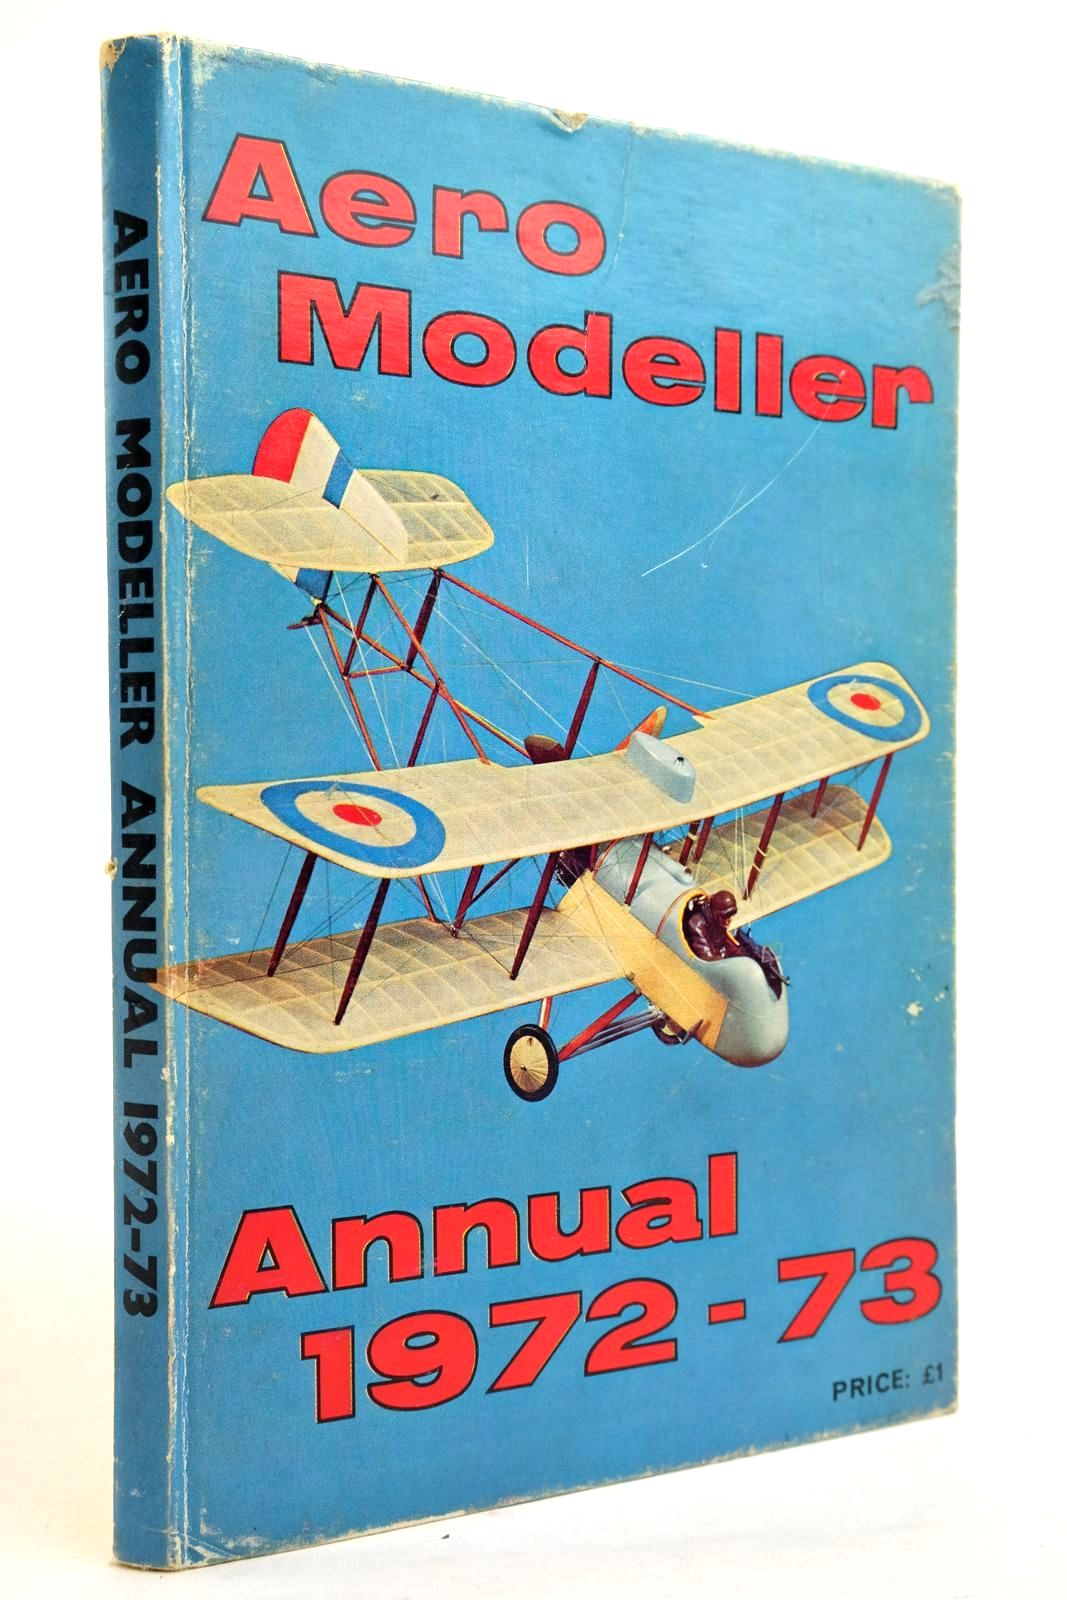 Photo of AEROMODELLER ANNUAL 1972-73- Stock Number: 2134481